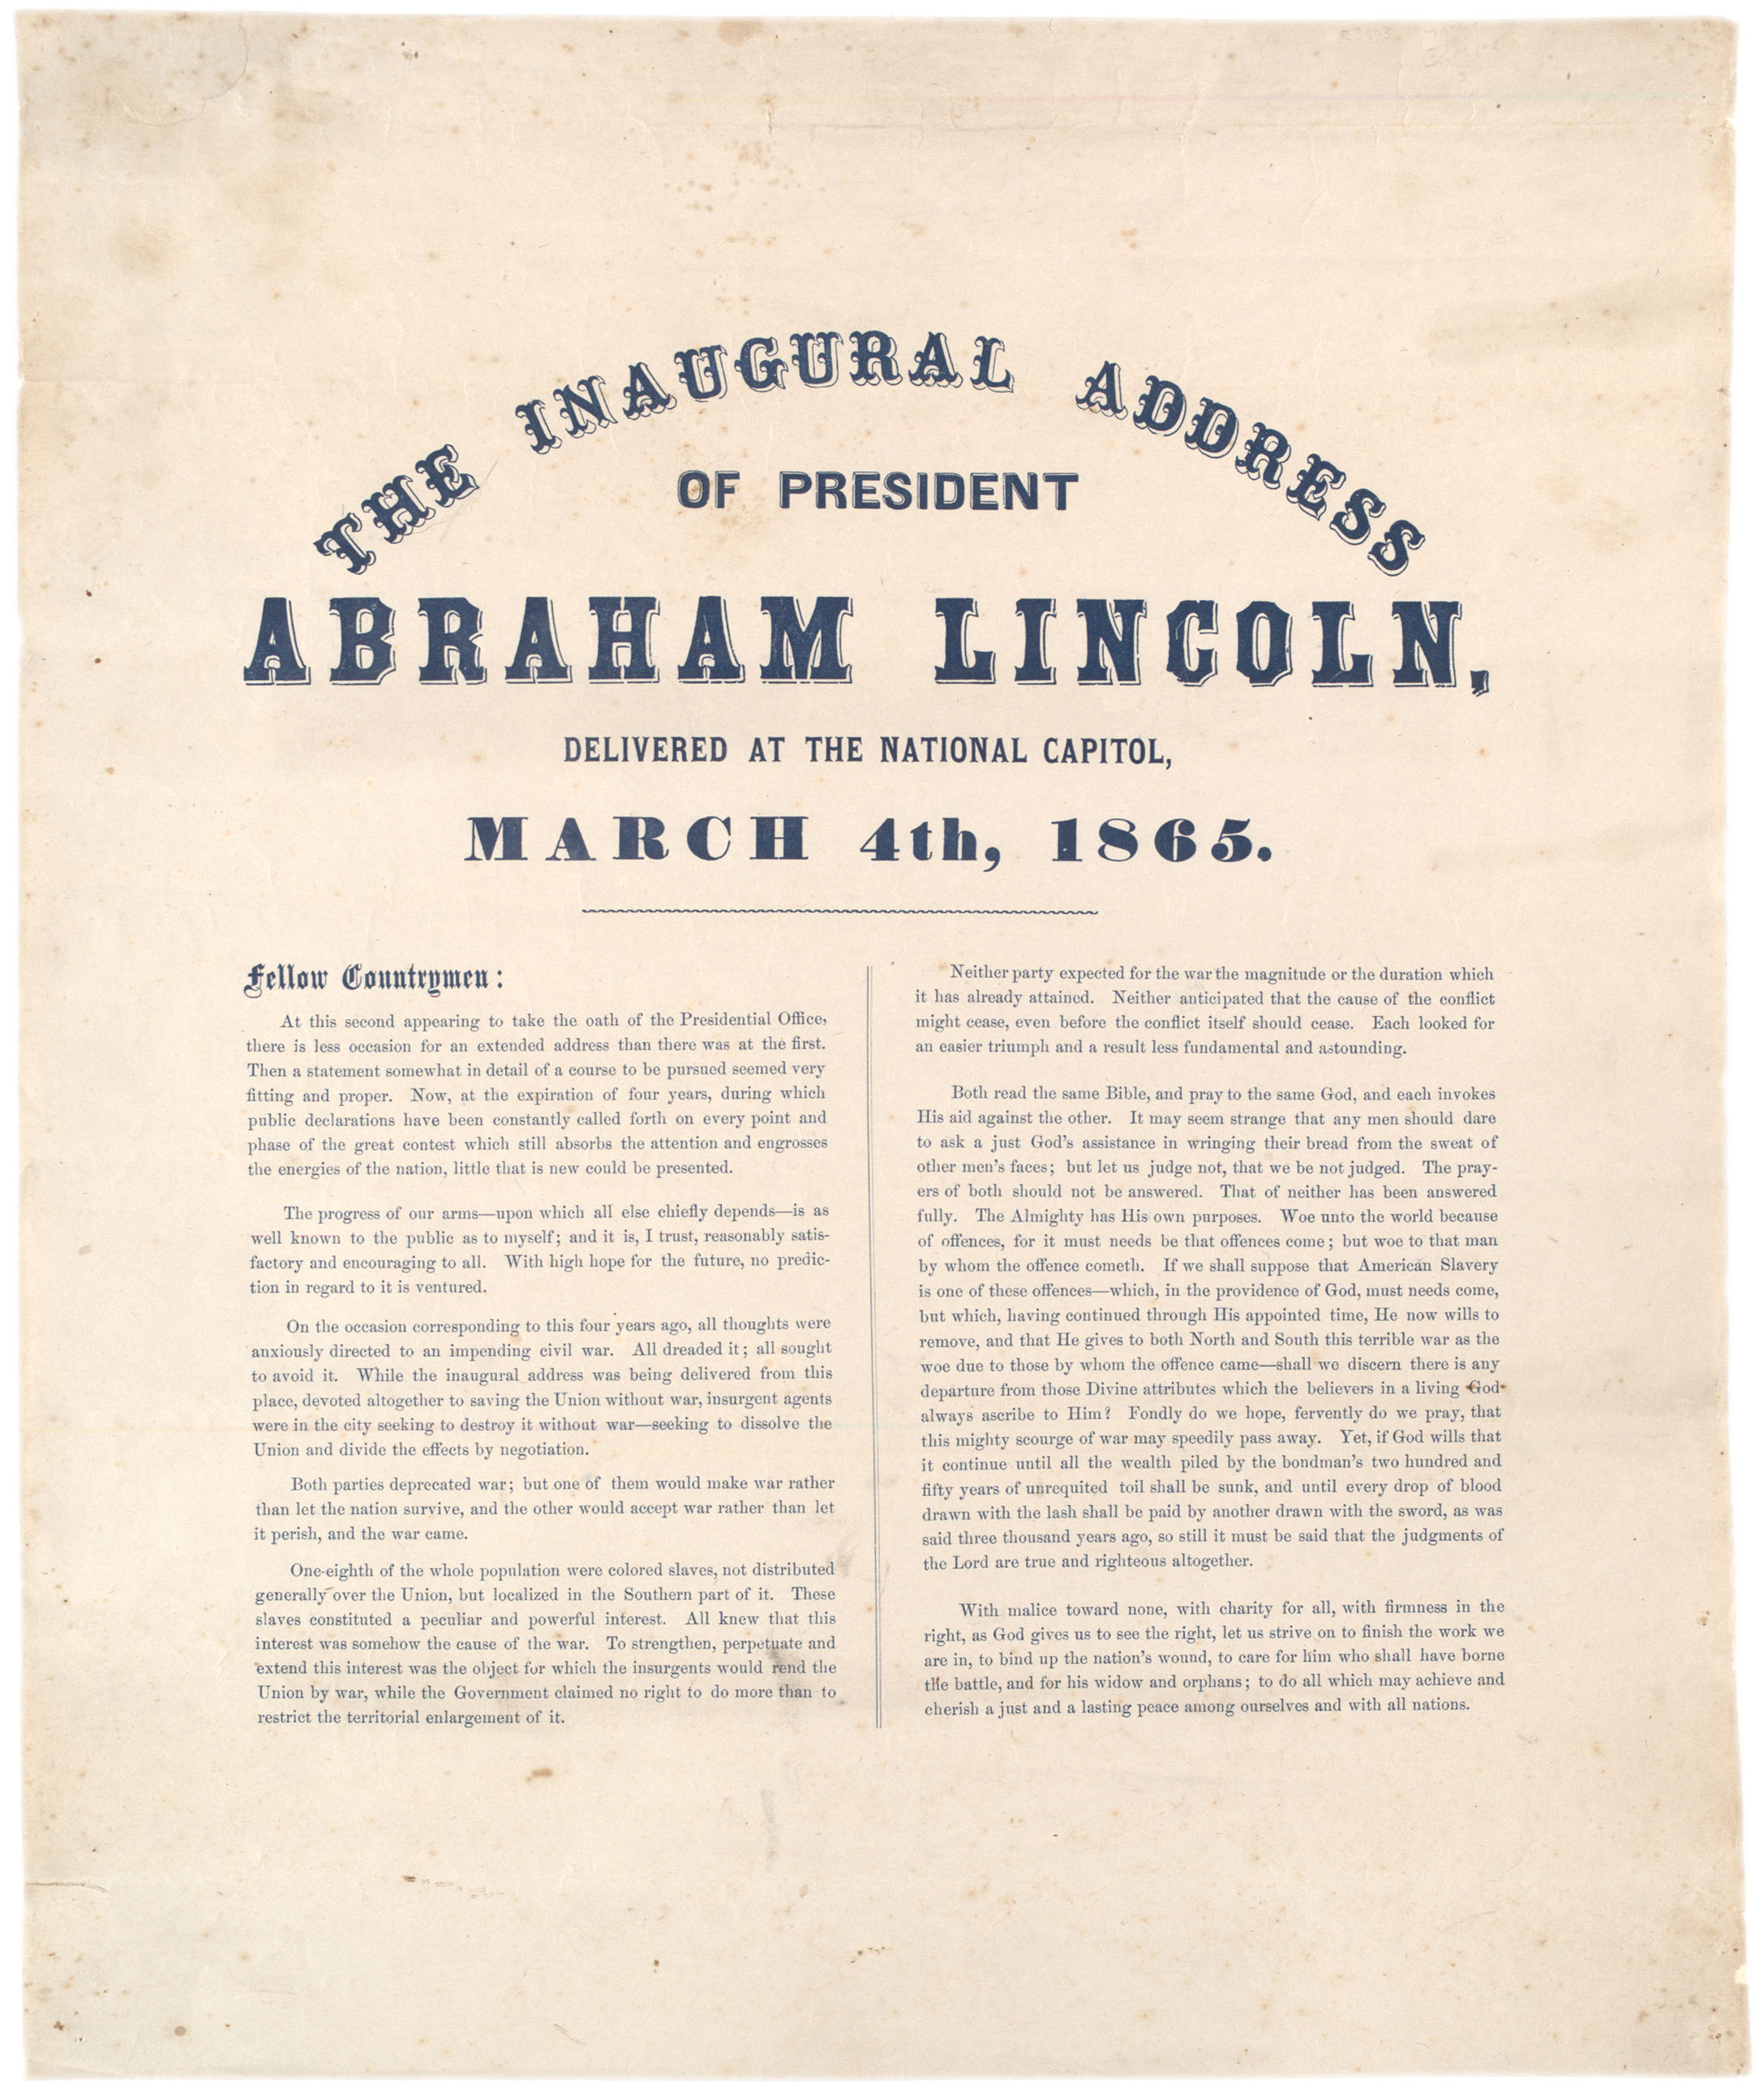 an analysis of abraham lincoln views regarding slavery during the civil war in first inaugural addre In his first inaugural address, lincoln said he had no lincoln's tariff war and only possible reason for both abraham lincoln's election to the.